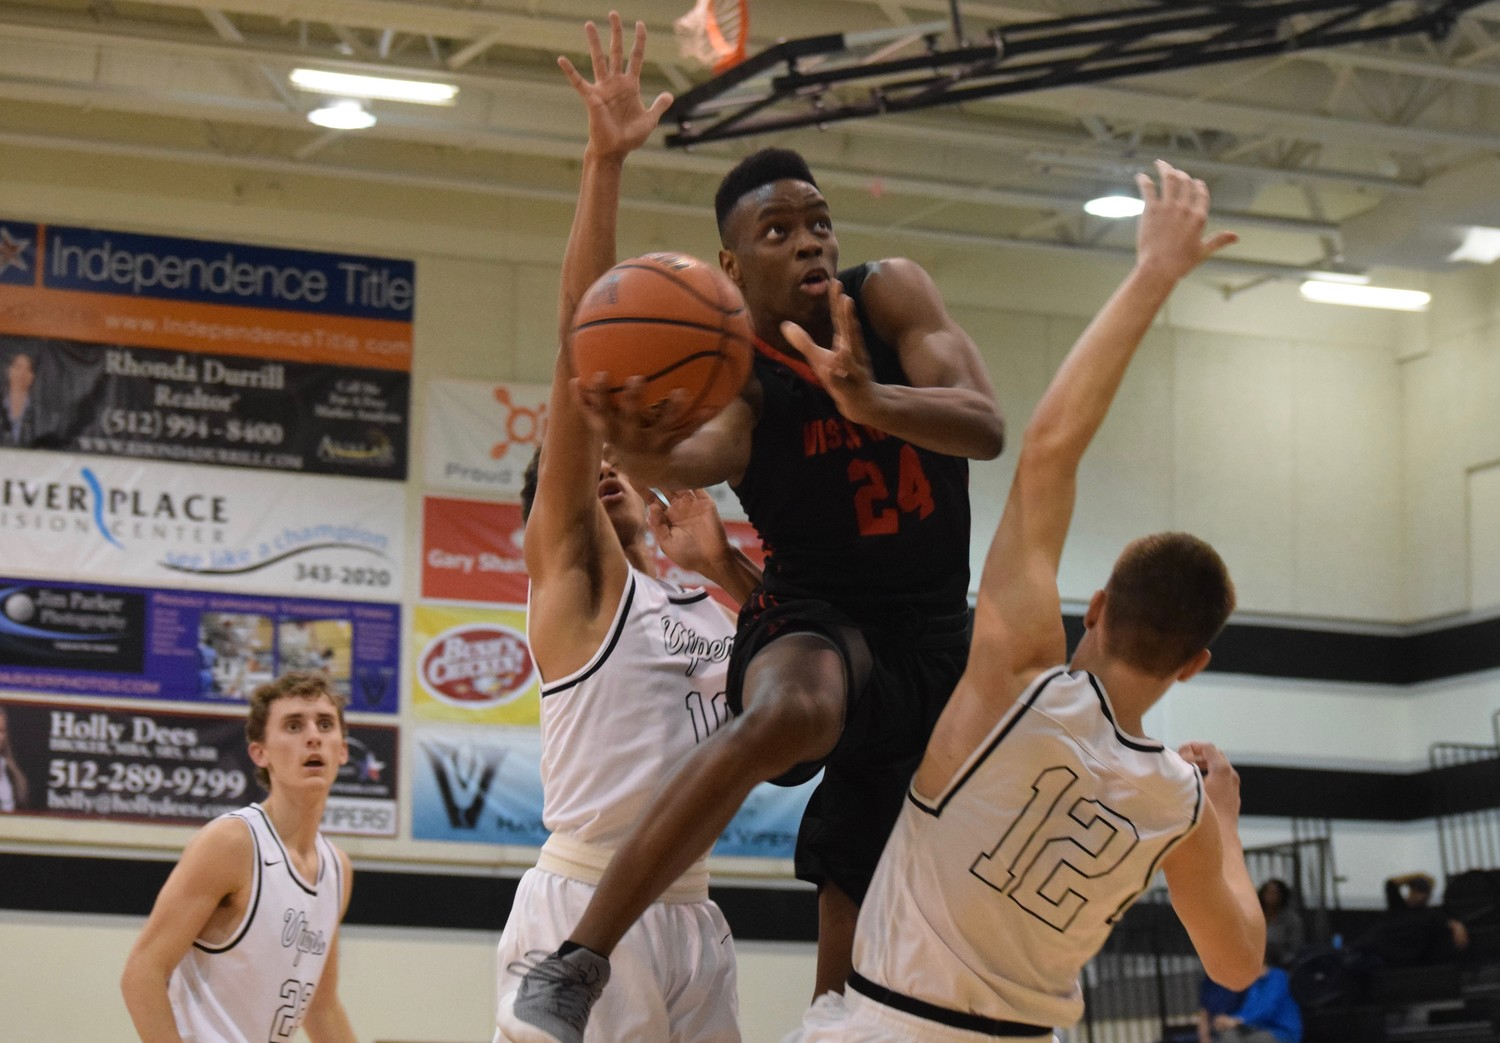 Darius McBride scored 18 points for Vista Ridge, but the Rangers lost to Vandegrift 77-73 in overtime on Tuesday night.